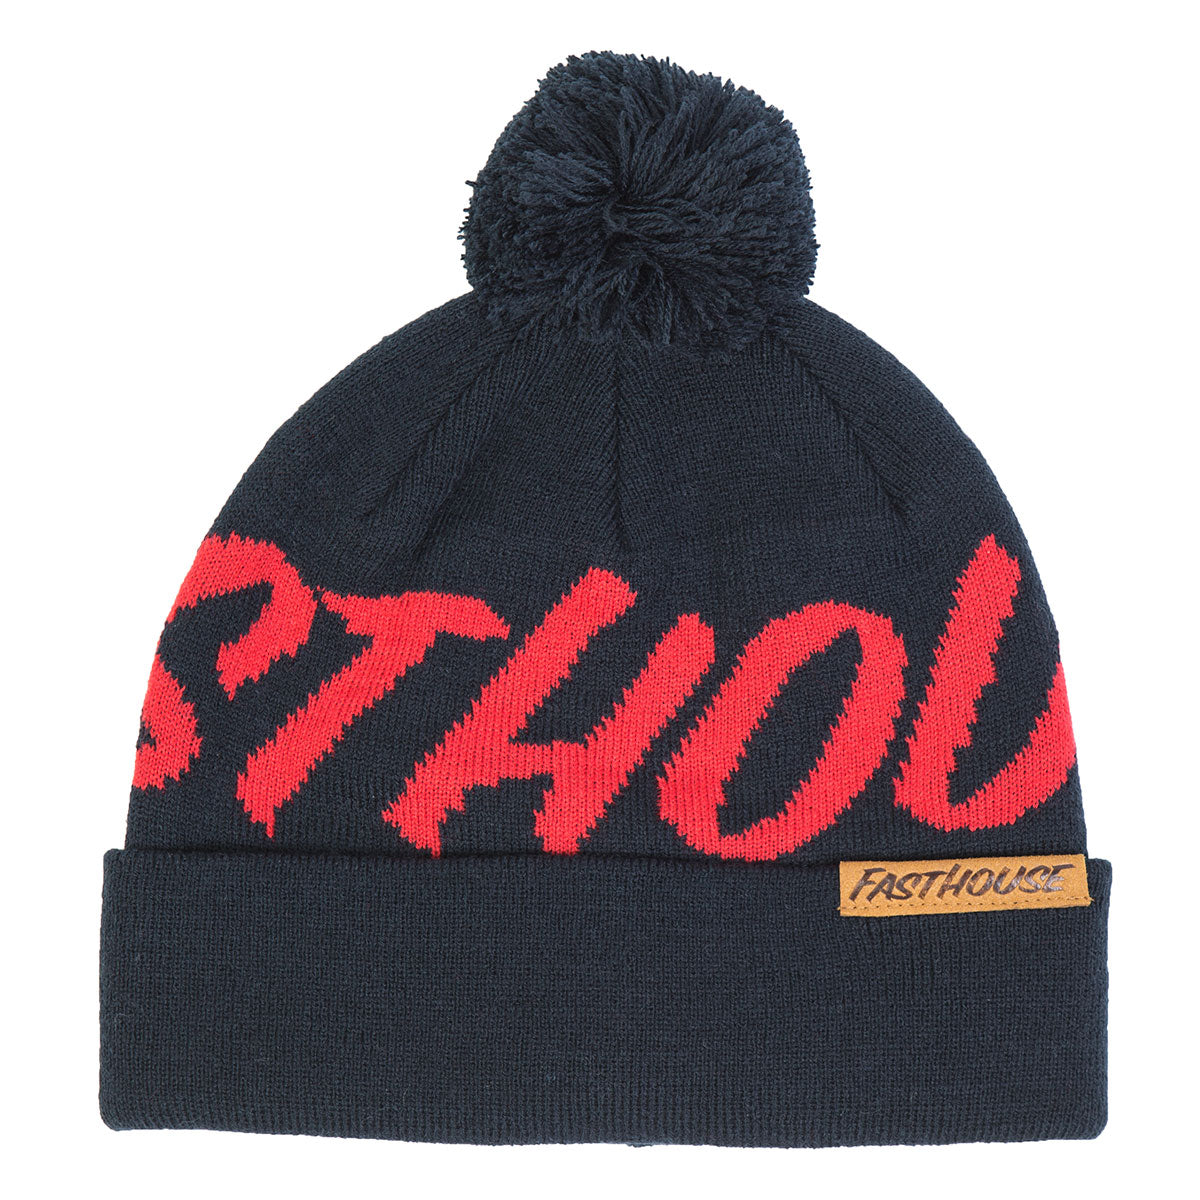 Fasthouse - Fastball Beanie - Navy